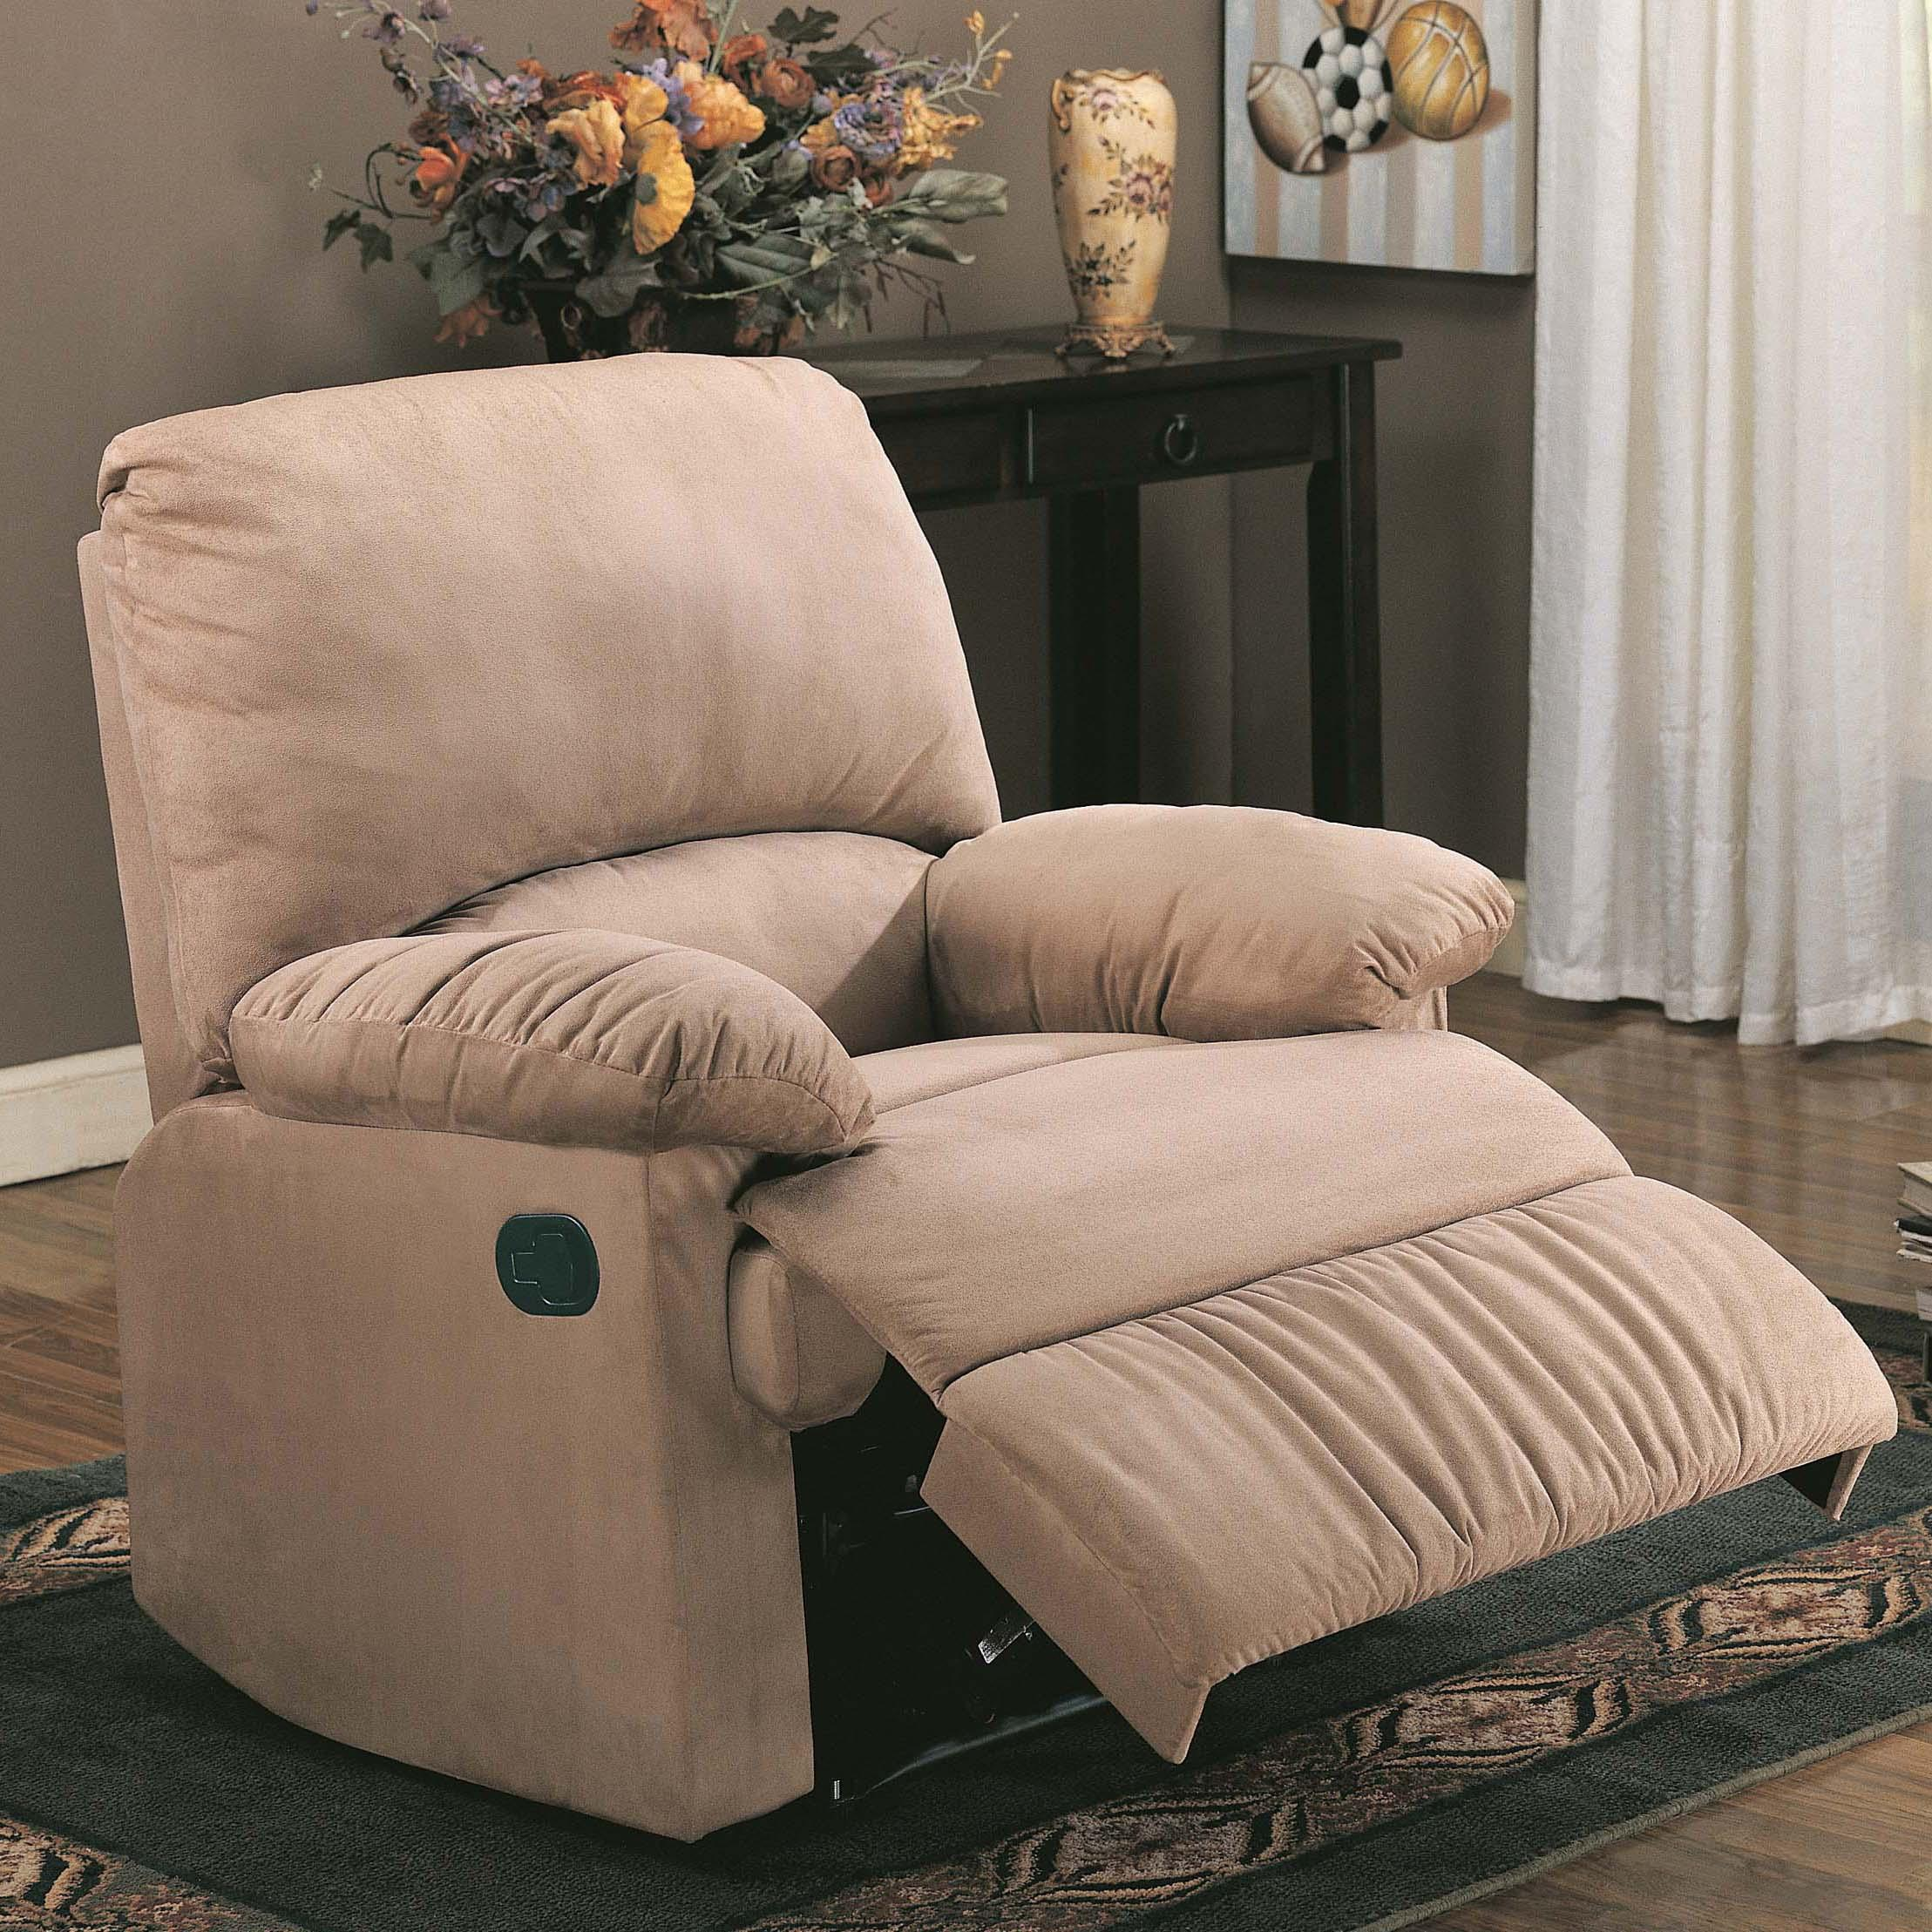 Recliners Glider Recliner by Coaster at Value City Furniture